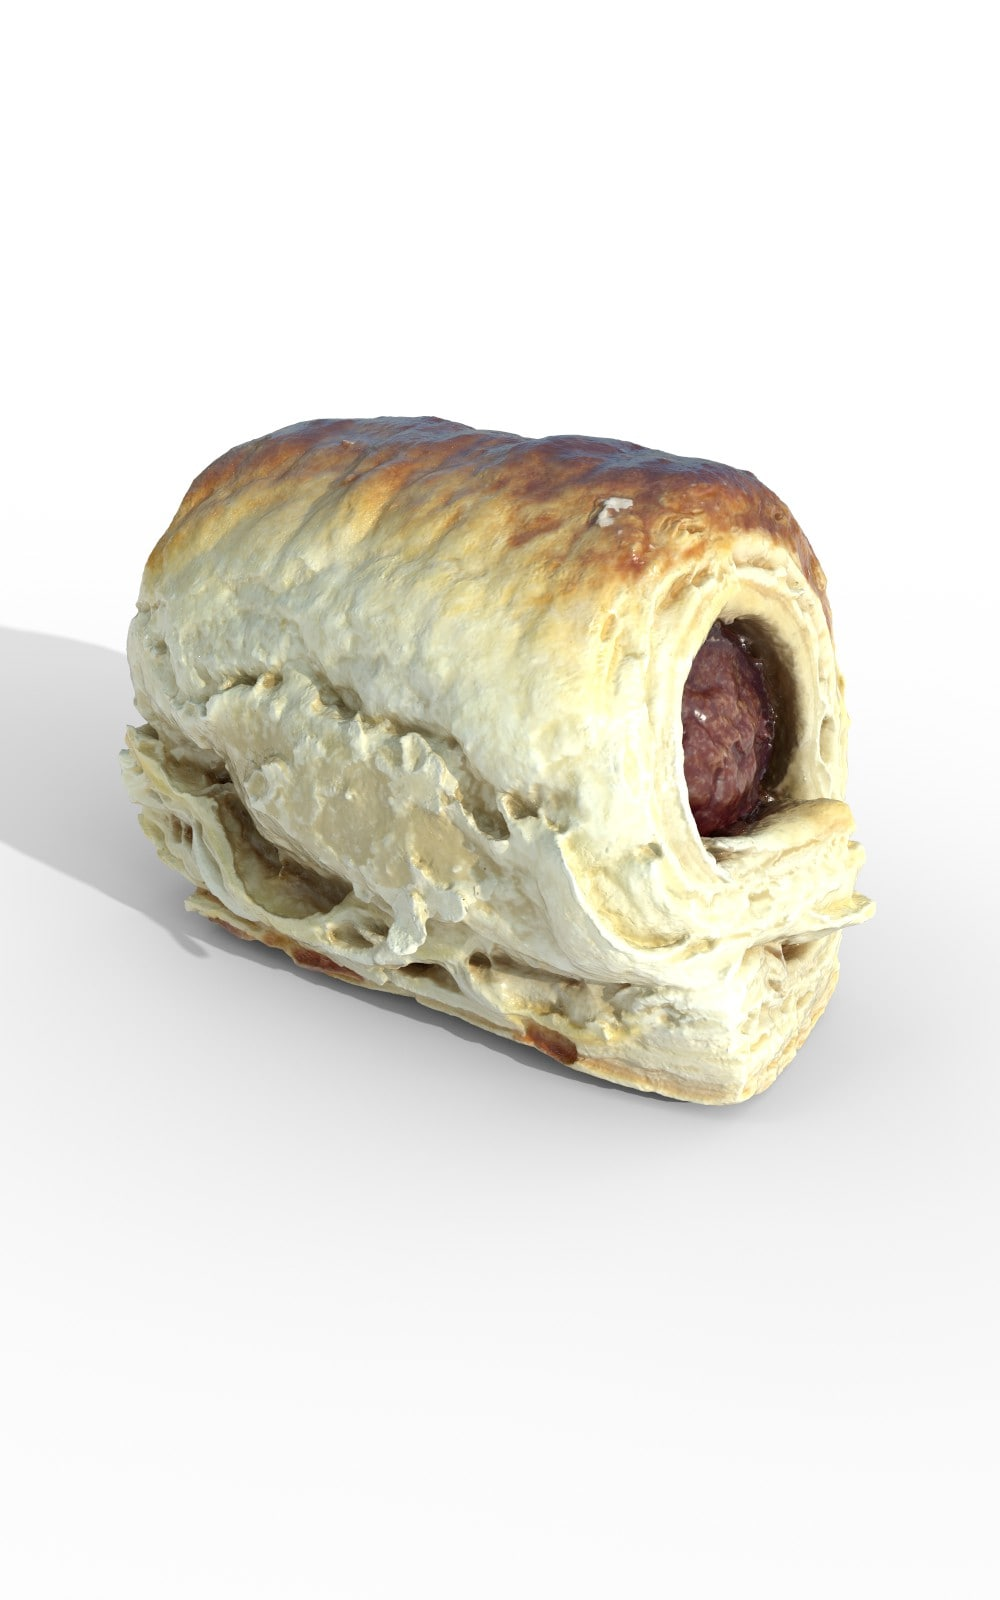 Sausage Puff Pastry Meal Premium 3D Model - image 2